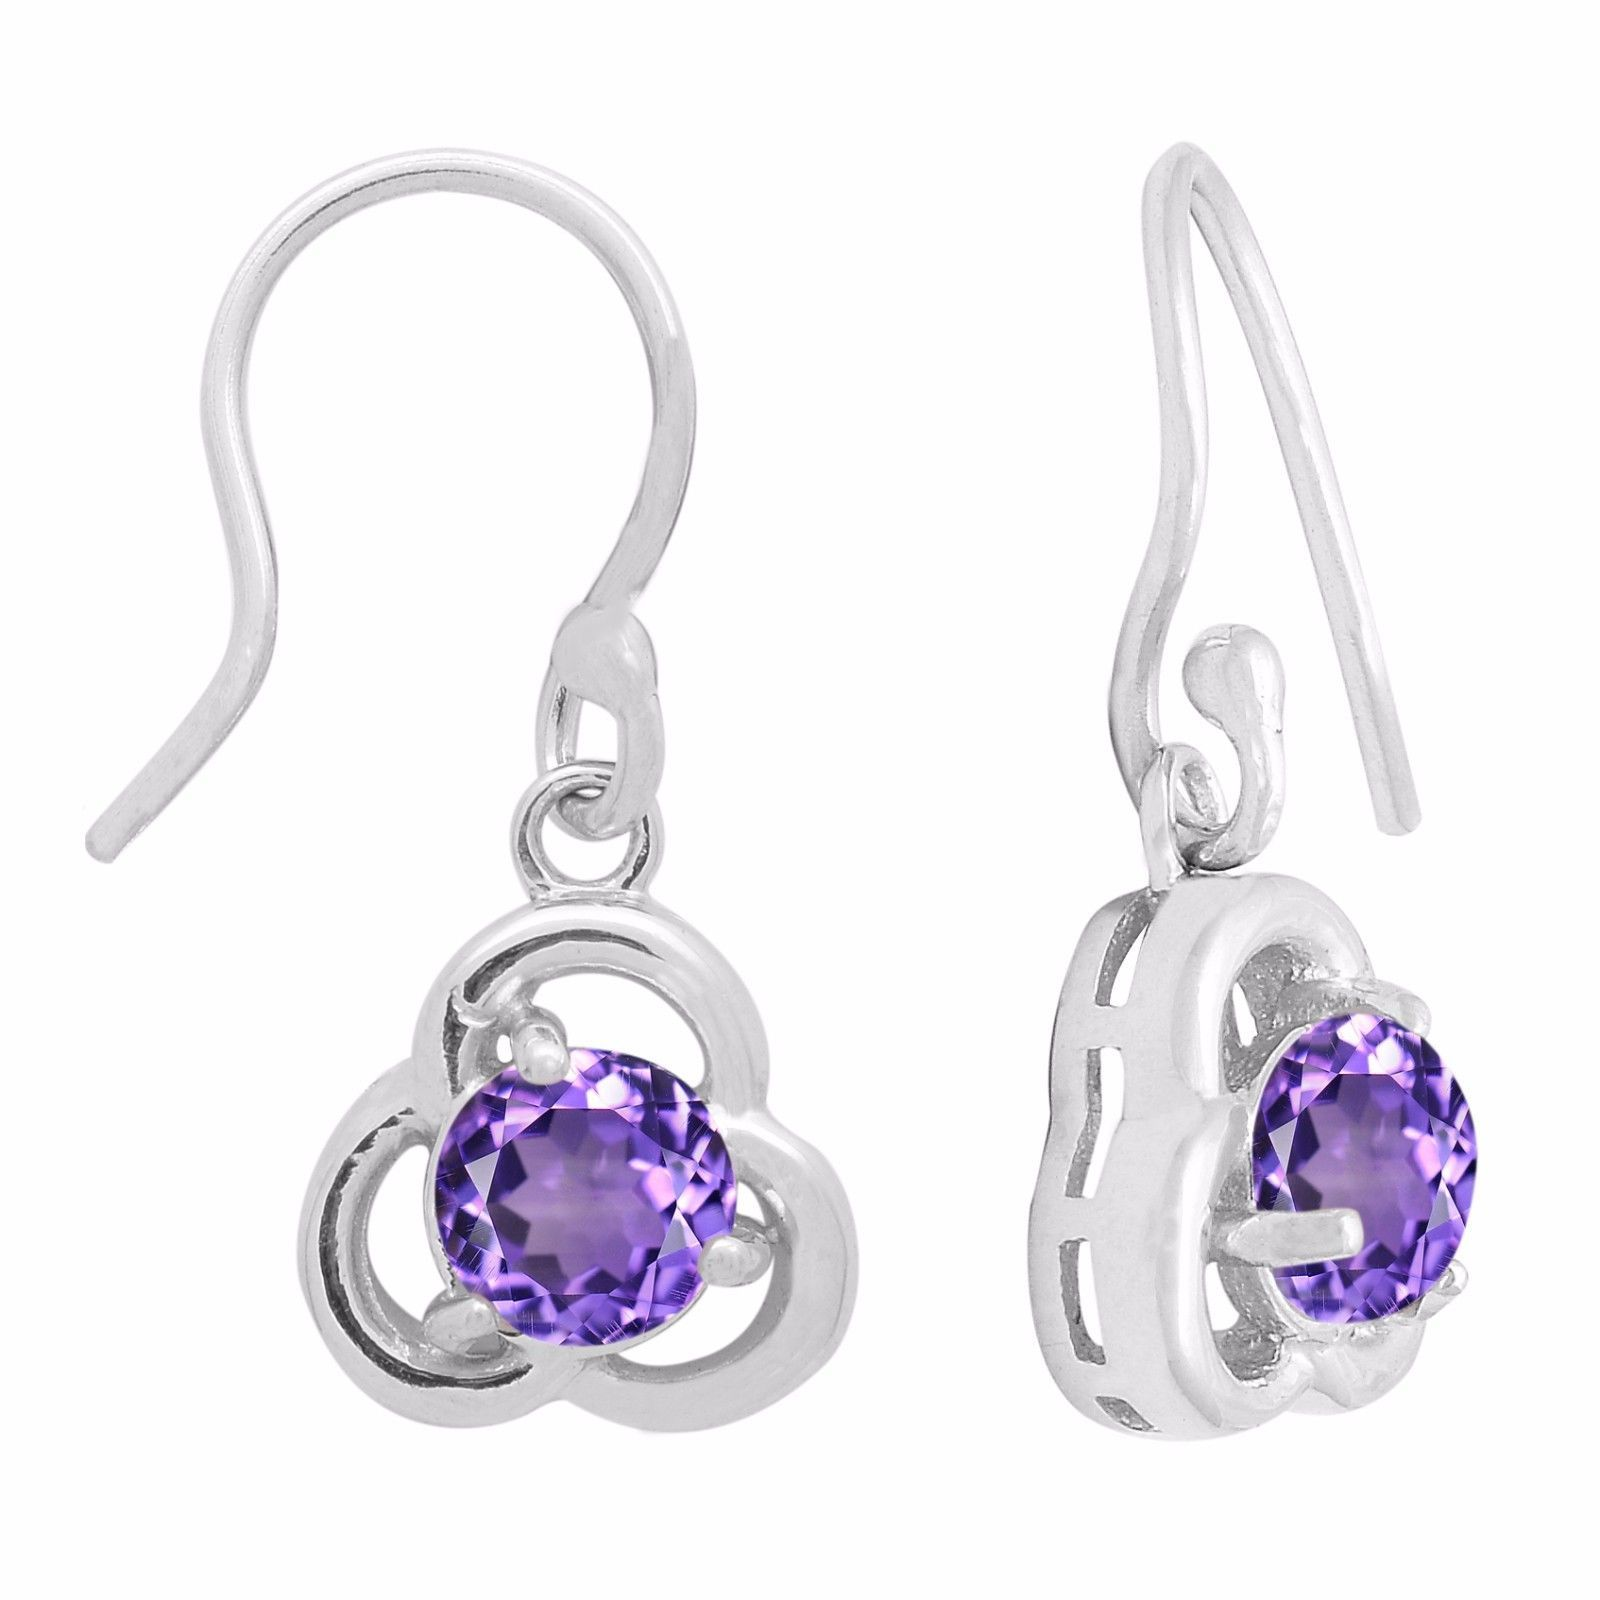 Free Shipping Wonderful Amethyst 925 Sterling Silver Earring Jewelry SHER1070